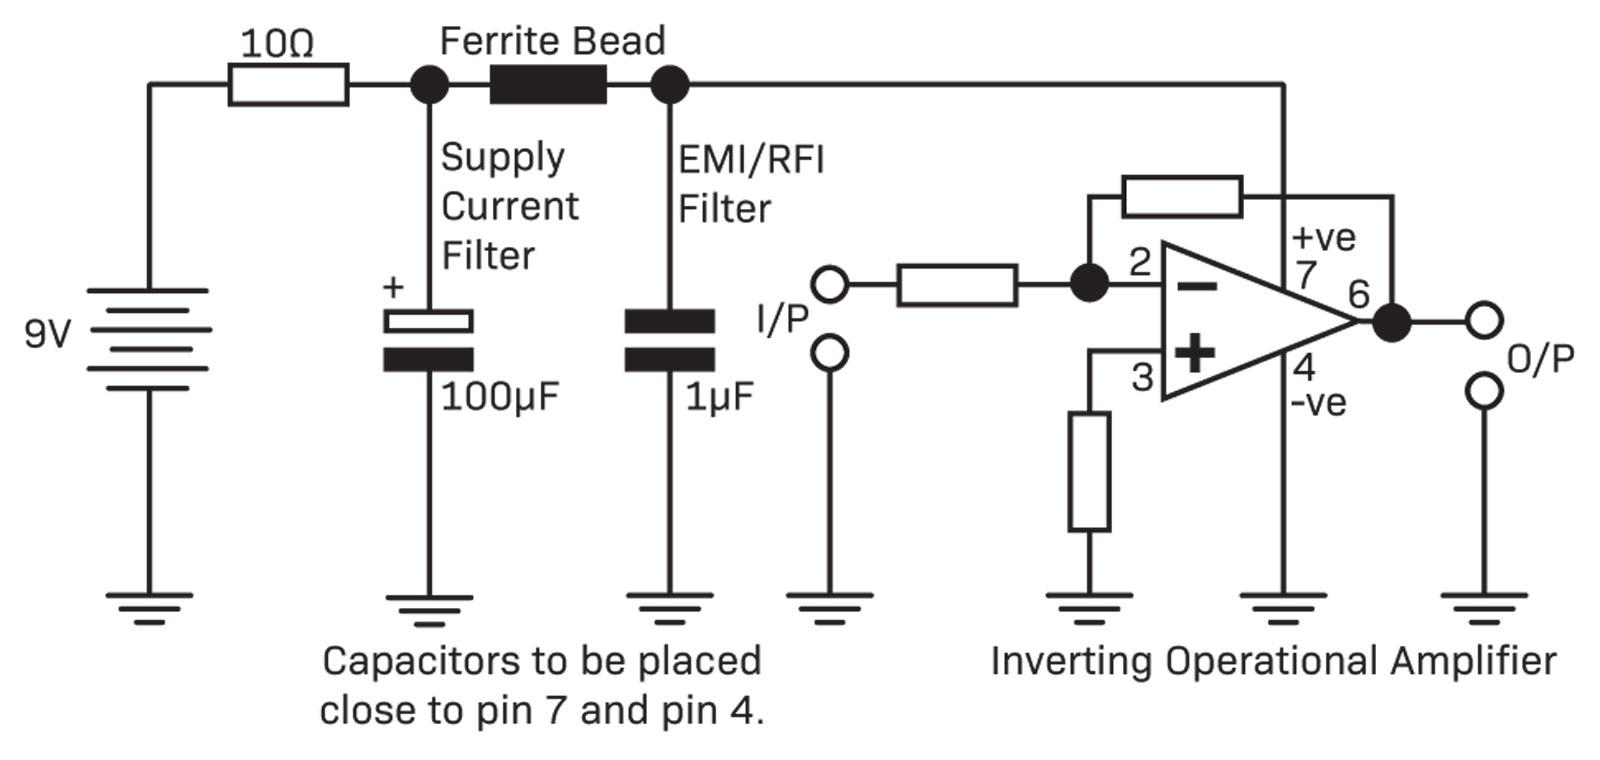 hight resolution of another method is to use ferrite beads or ferrite inductors to reject unwanted noise from your precious circuit sometimes a low value series resistor can